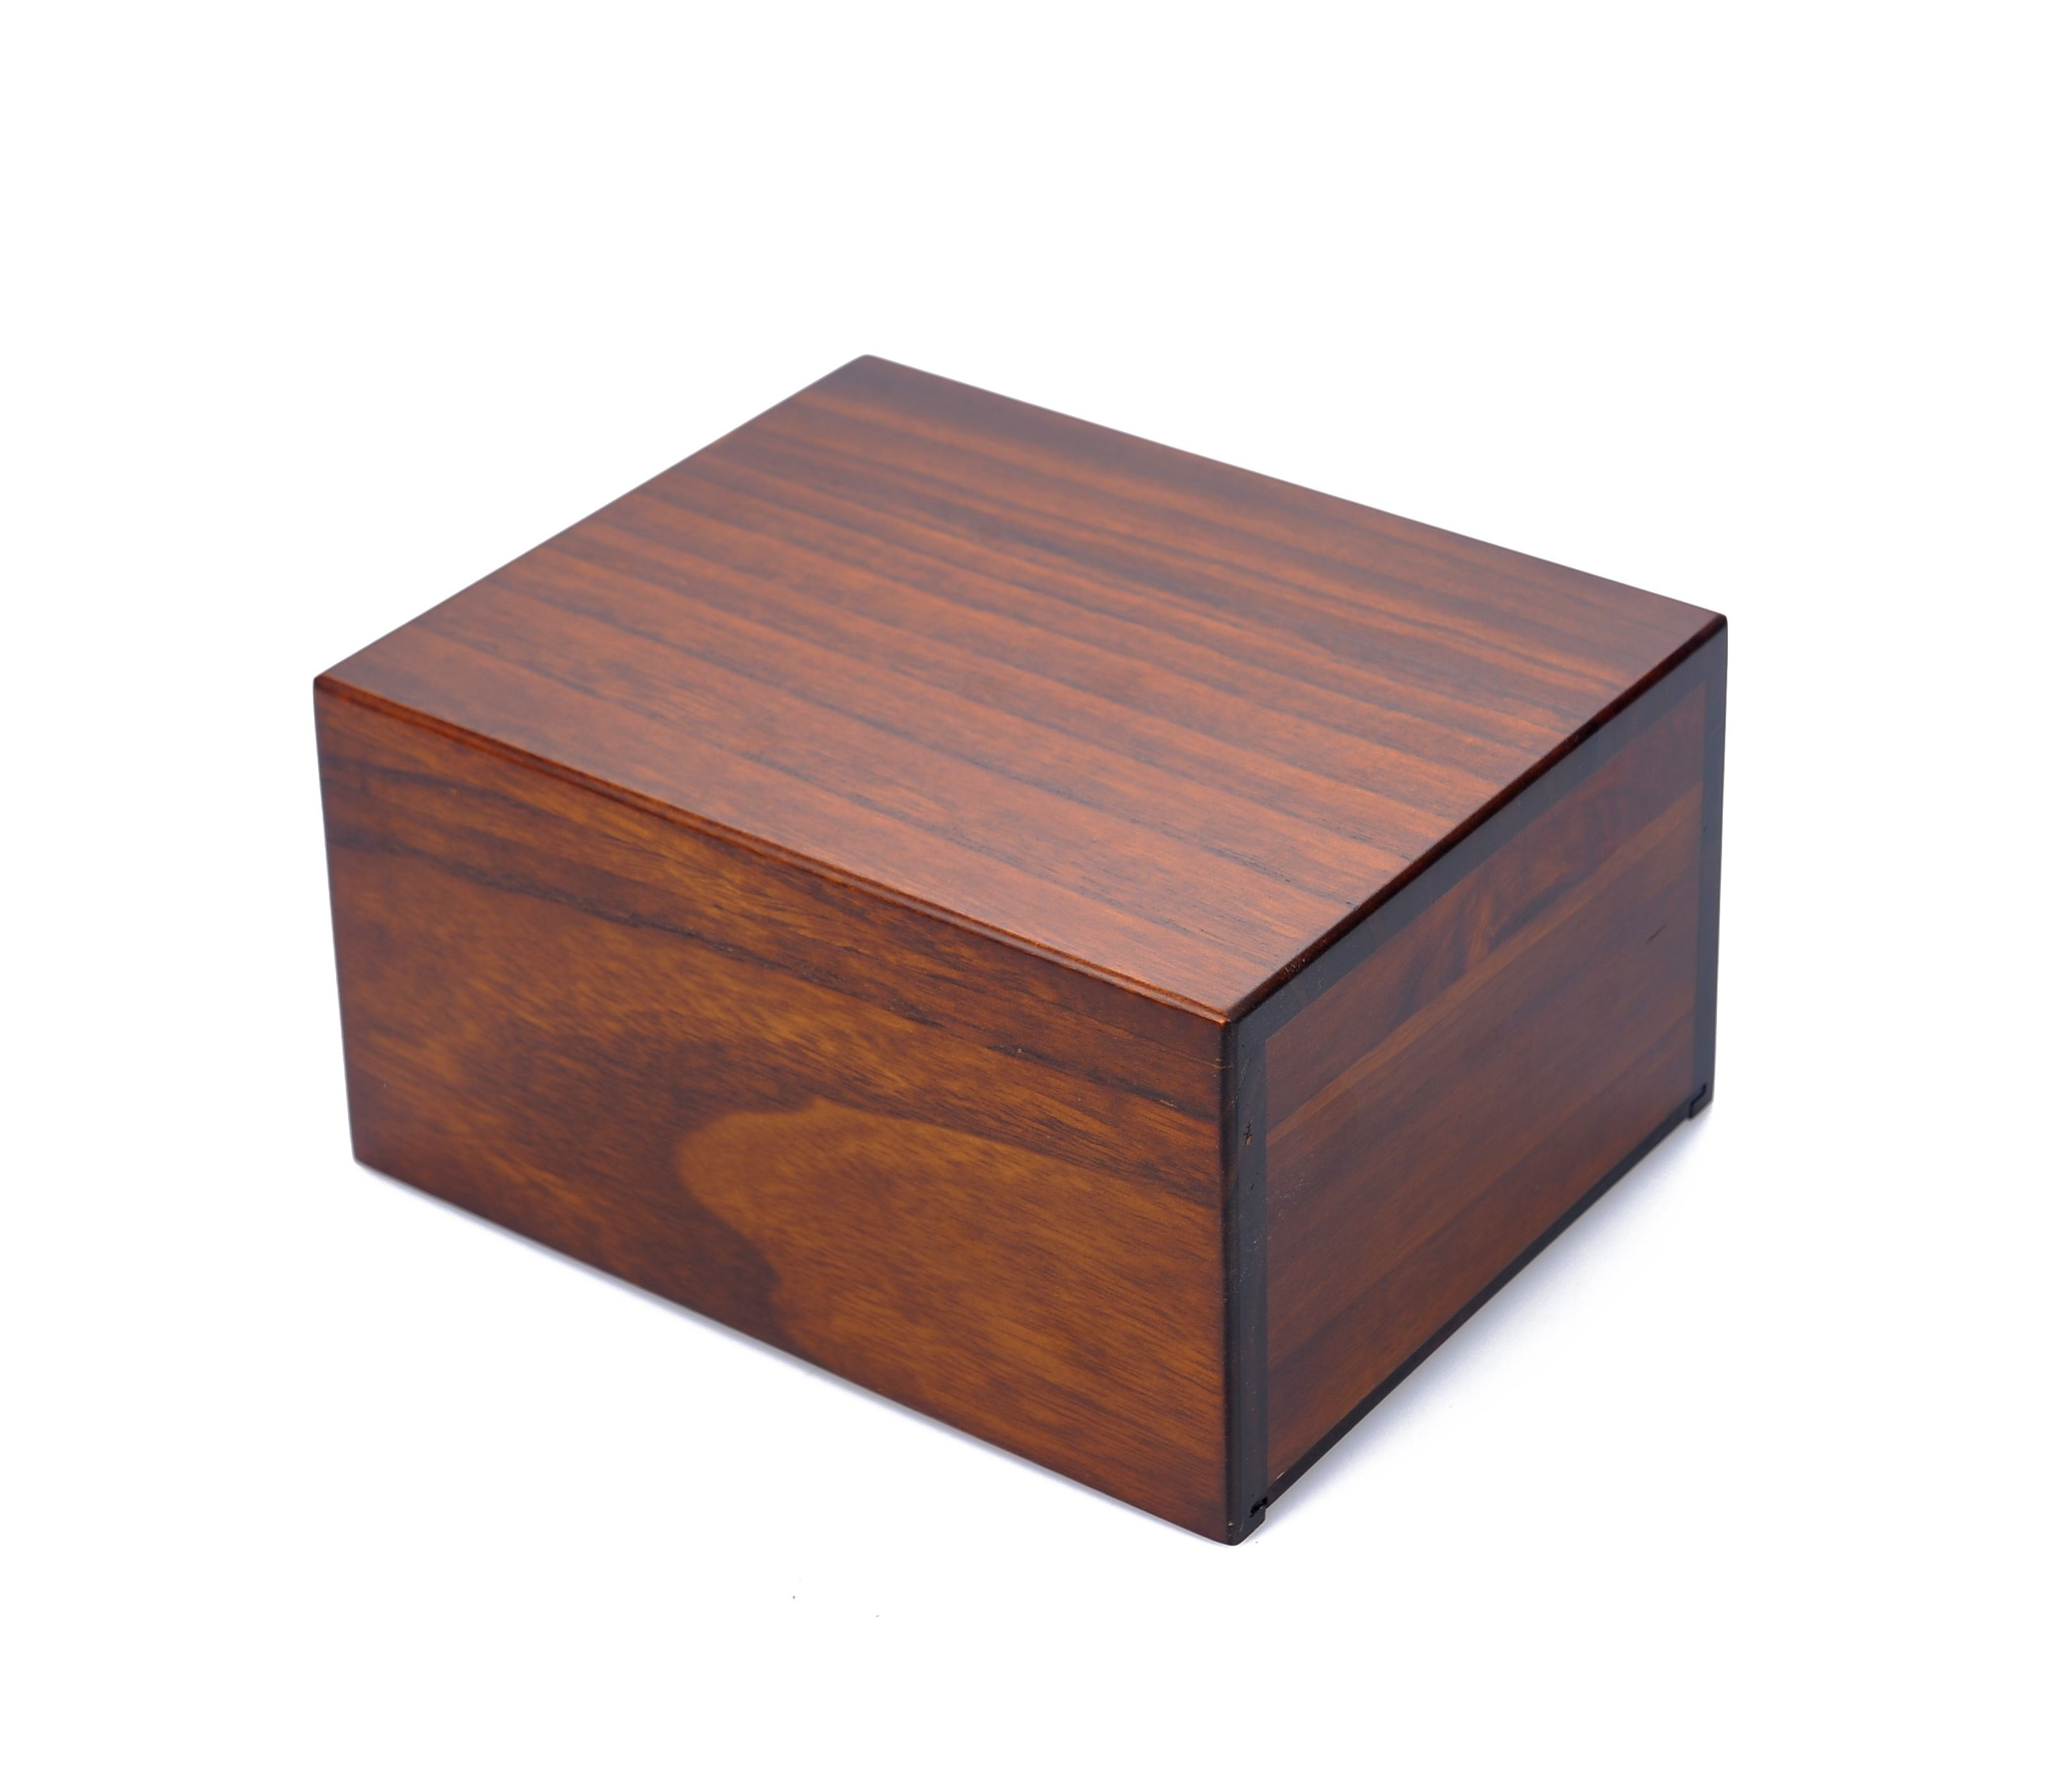 OSB051 Wholesale Funeral Wooden Casket Pet Cremation Urns for Animal Ashes Mini Wood Pet Urnas